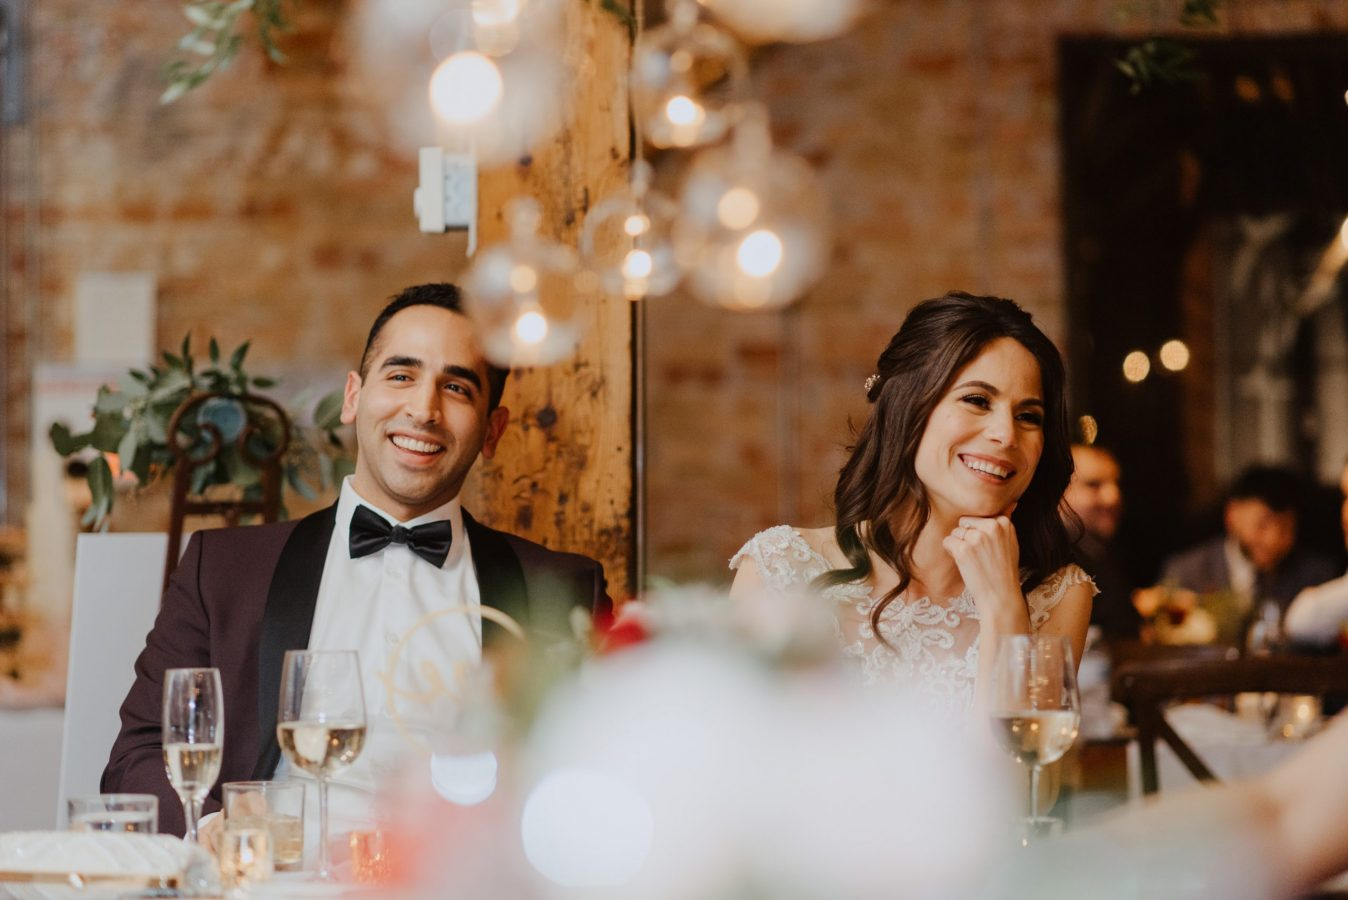 Jessilynn Wong Photography, one of the best wedding photographers in Toronto